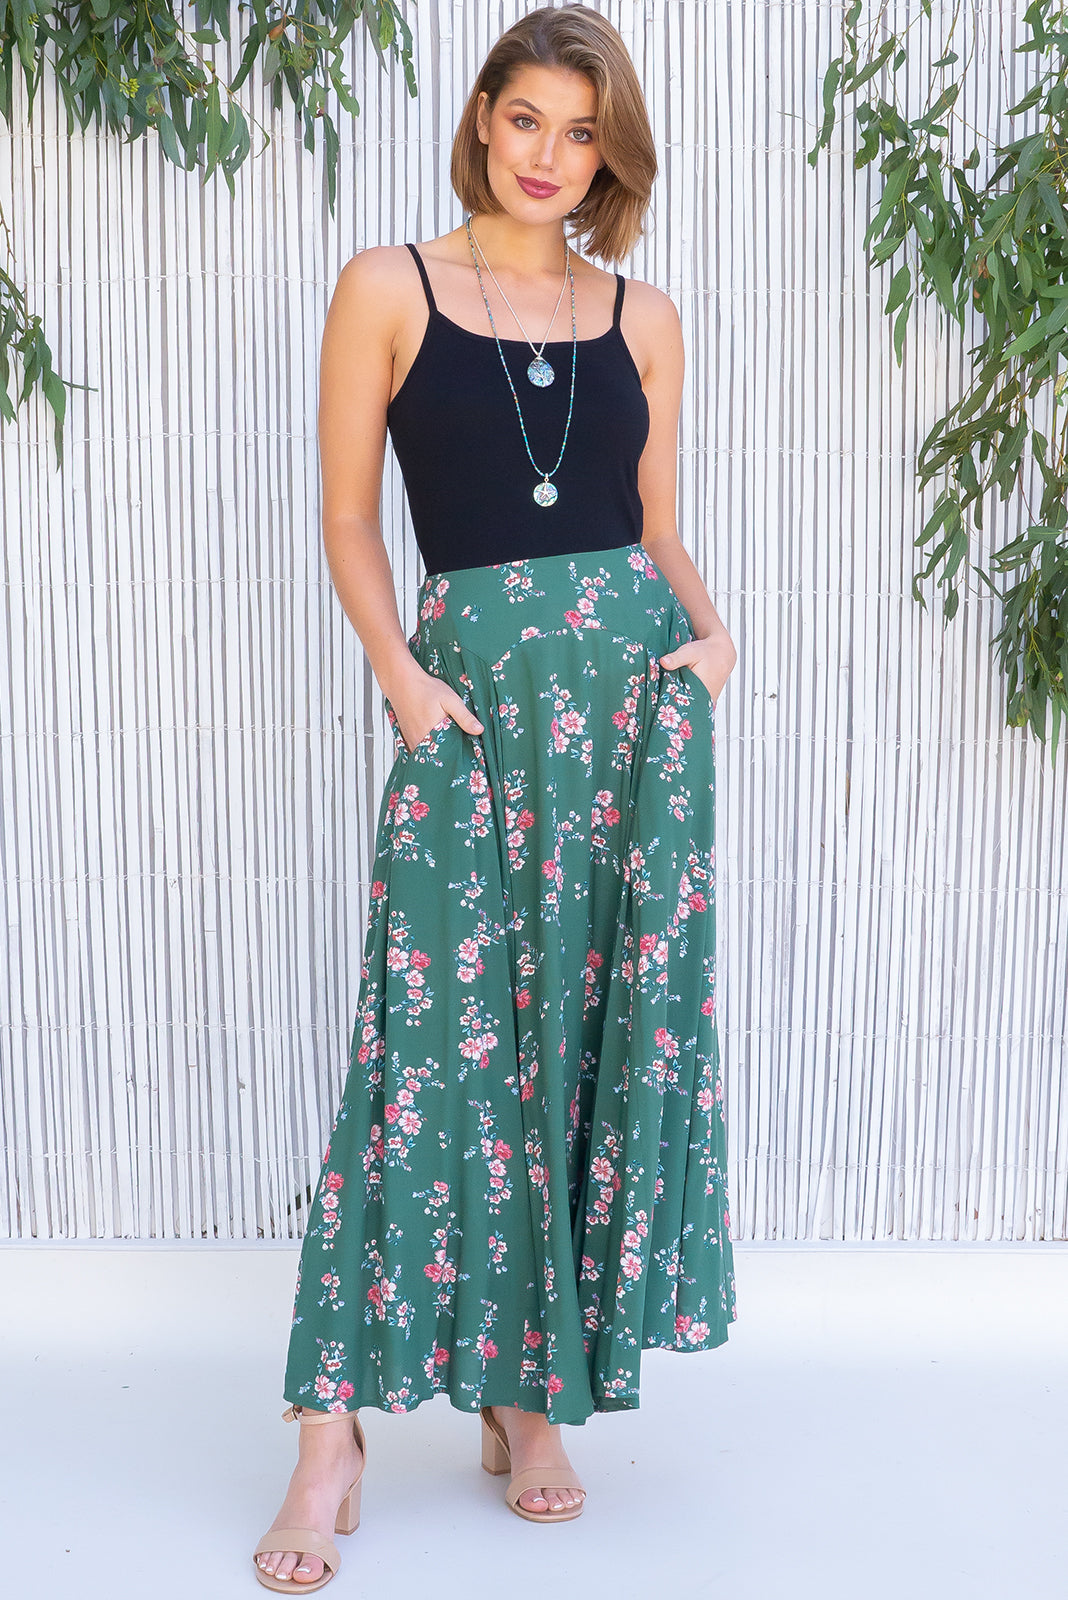 Atlantis Galway Green Maxi Skirt features double V-shaped waist yoke, inset panels from the yoke down, elasticated & ruched back of waist, side pockets, shapely hemline and woven 100% viscose in soft green base with pink floral print.